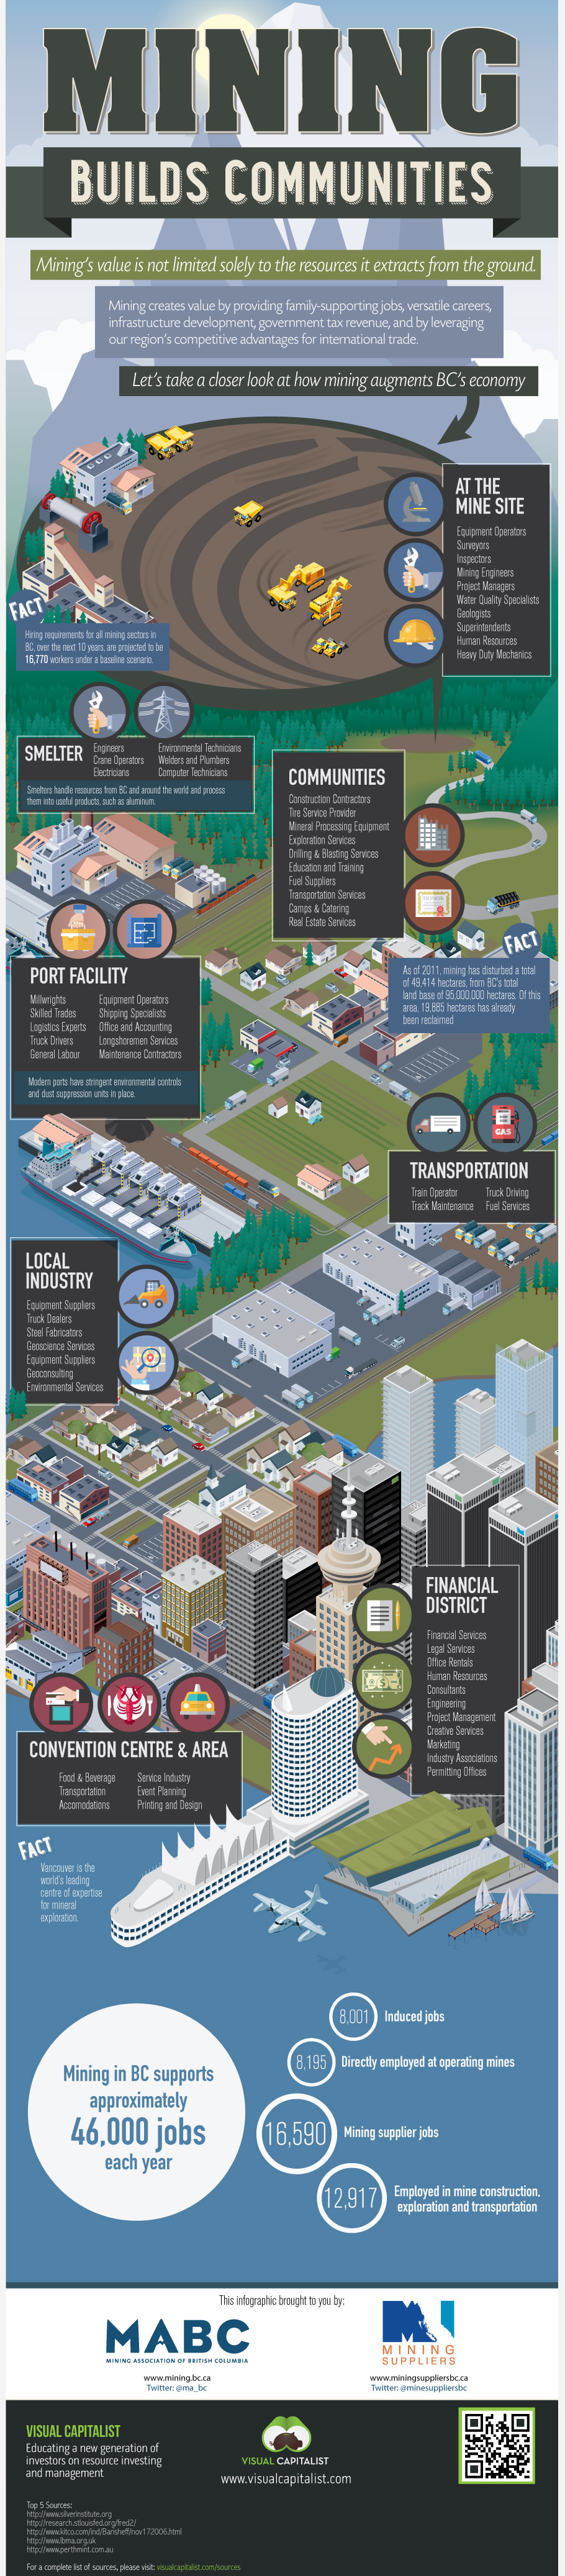 INFOGRAPHIC: Mining builds communities